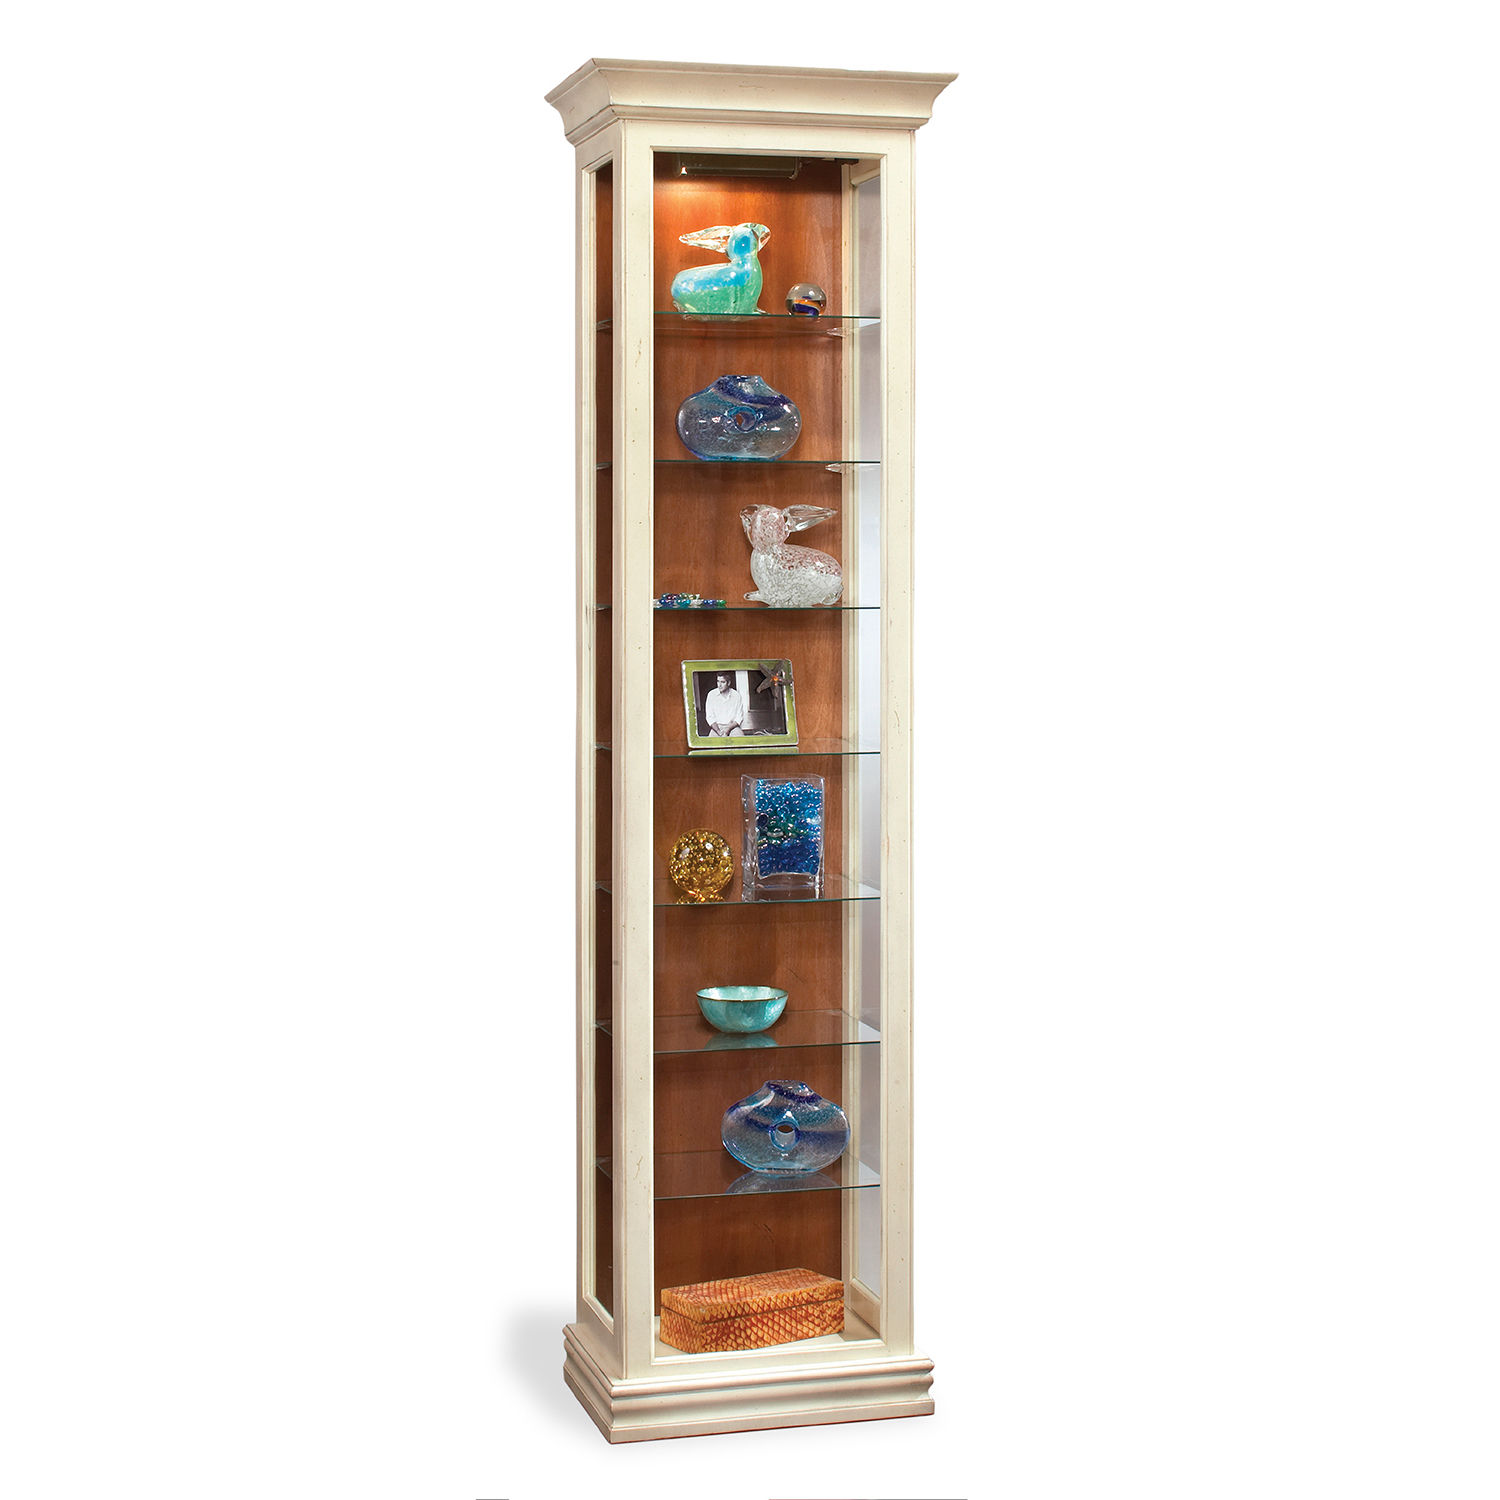 Philip Reinisch  Co. Color Time Harmony Display Cabinet, Sandshell White